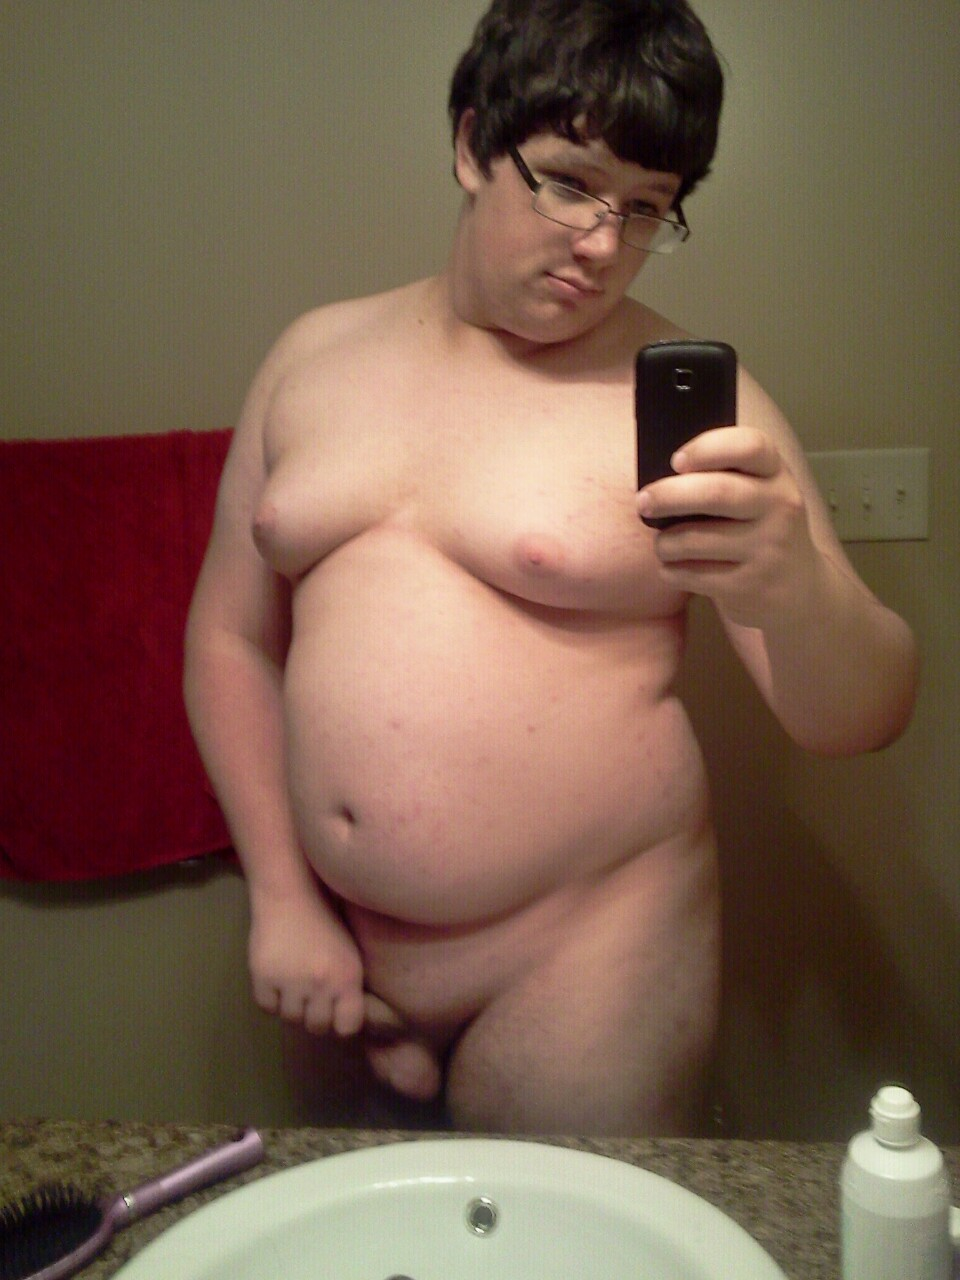 chubby-white-boy-naked-hair-blonde-with-bottom-black